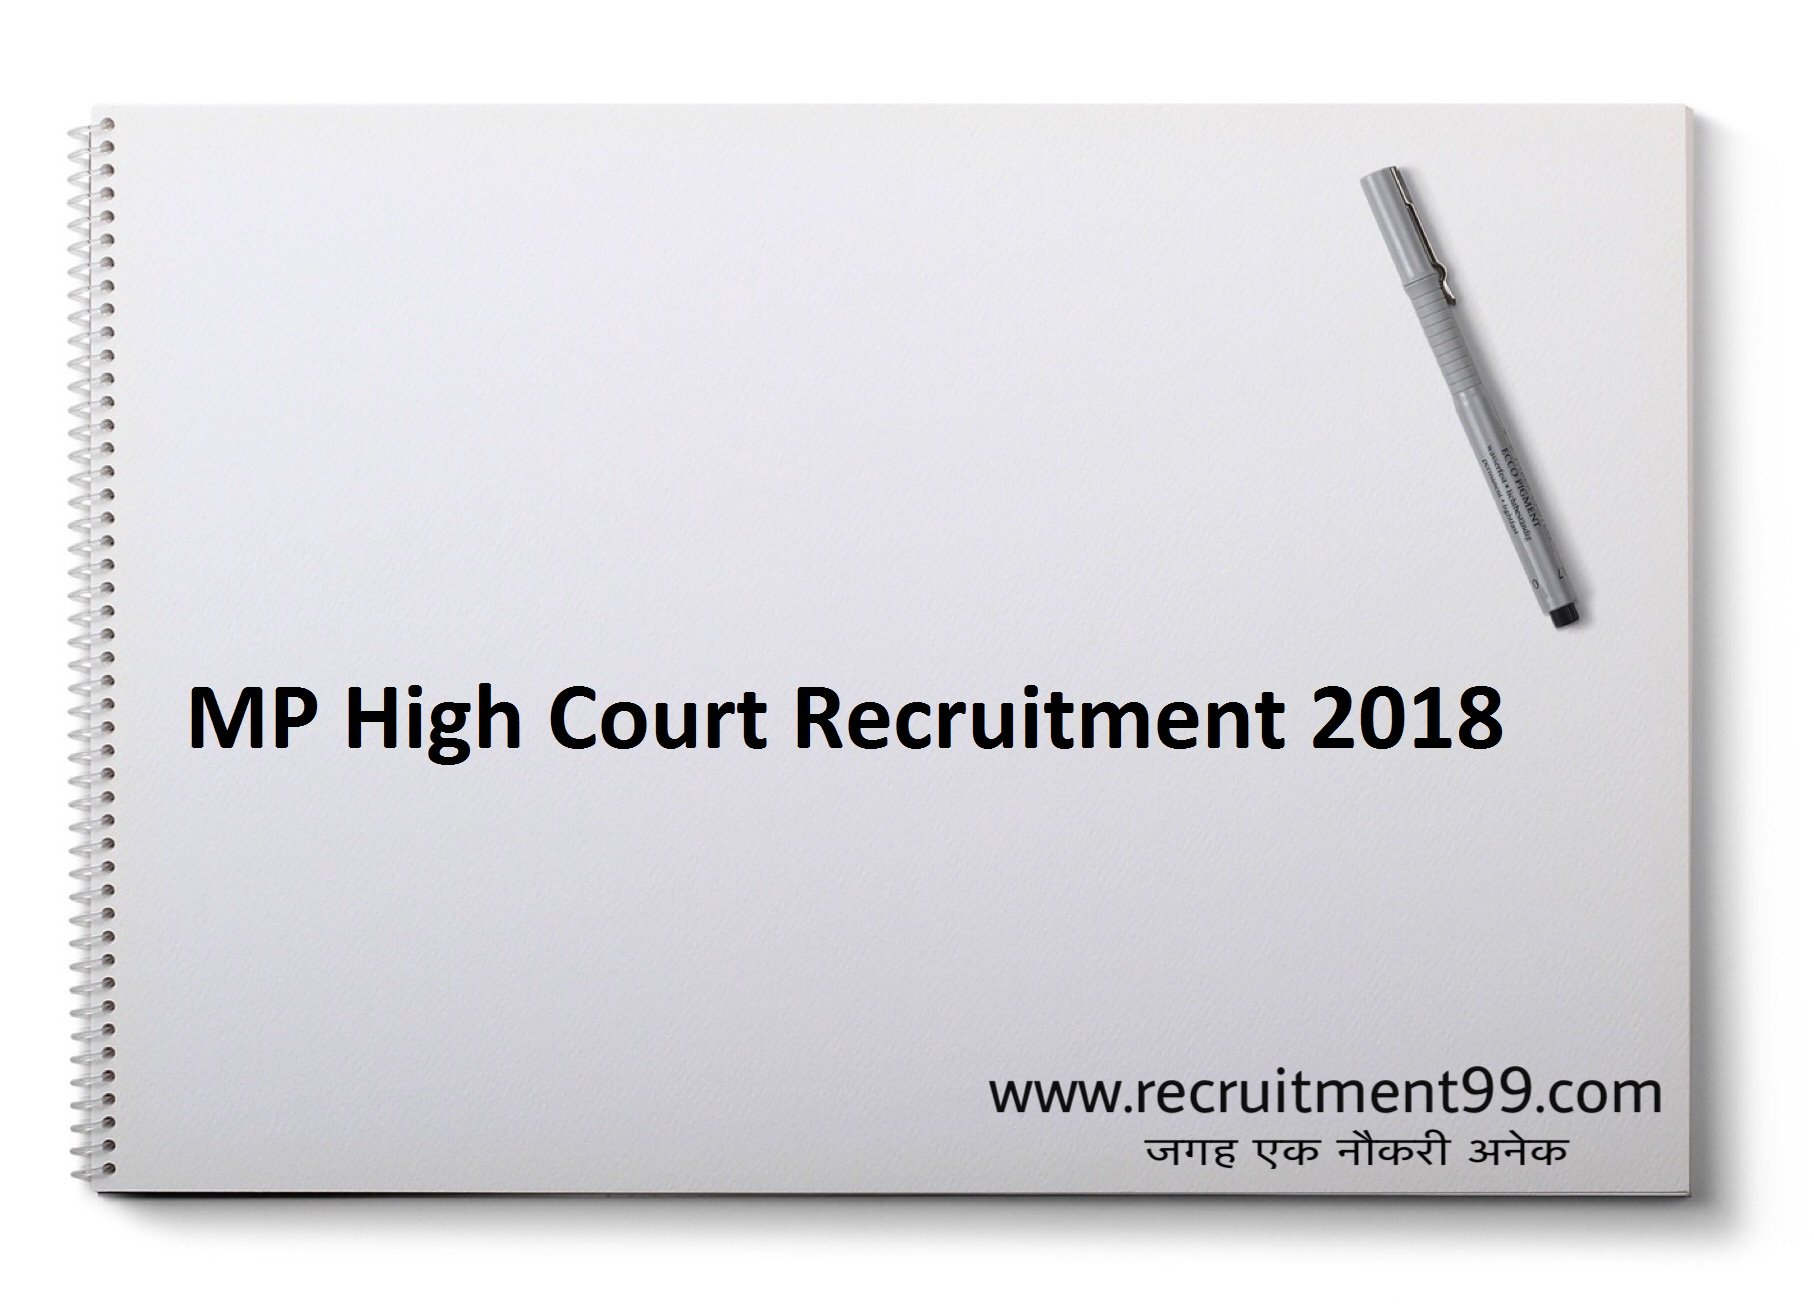 MPHC Cook Sweeper Gardener & Peon (Group D) Recruitment Admit Card & Result 2018